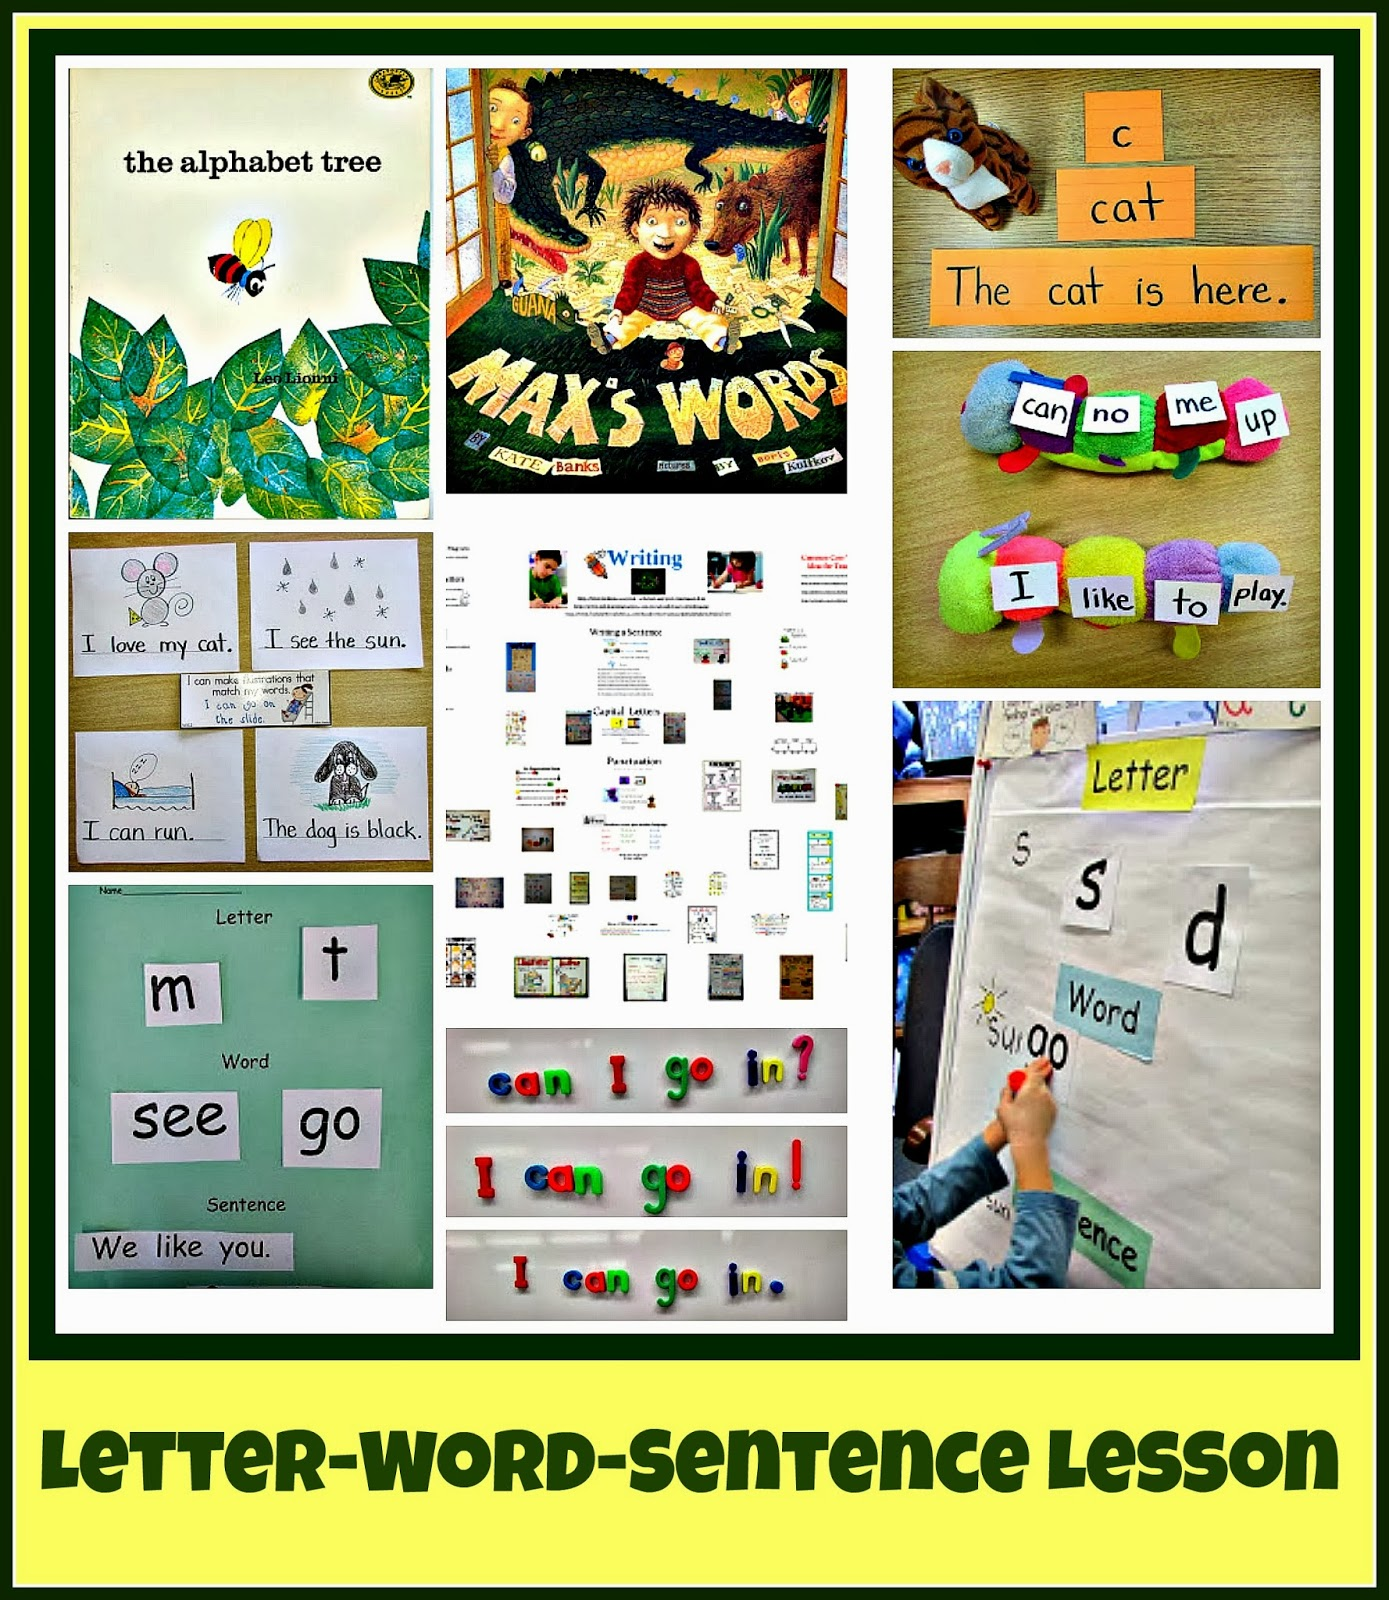 Worksheet Letters Kindergarten kindergarten holding hands and sticking together letter word sentence lesson